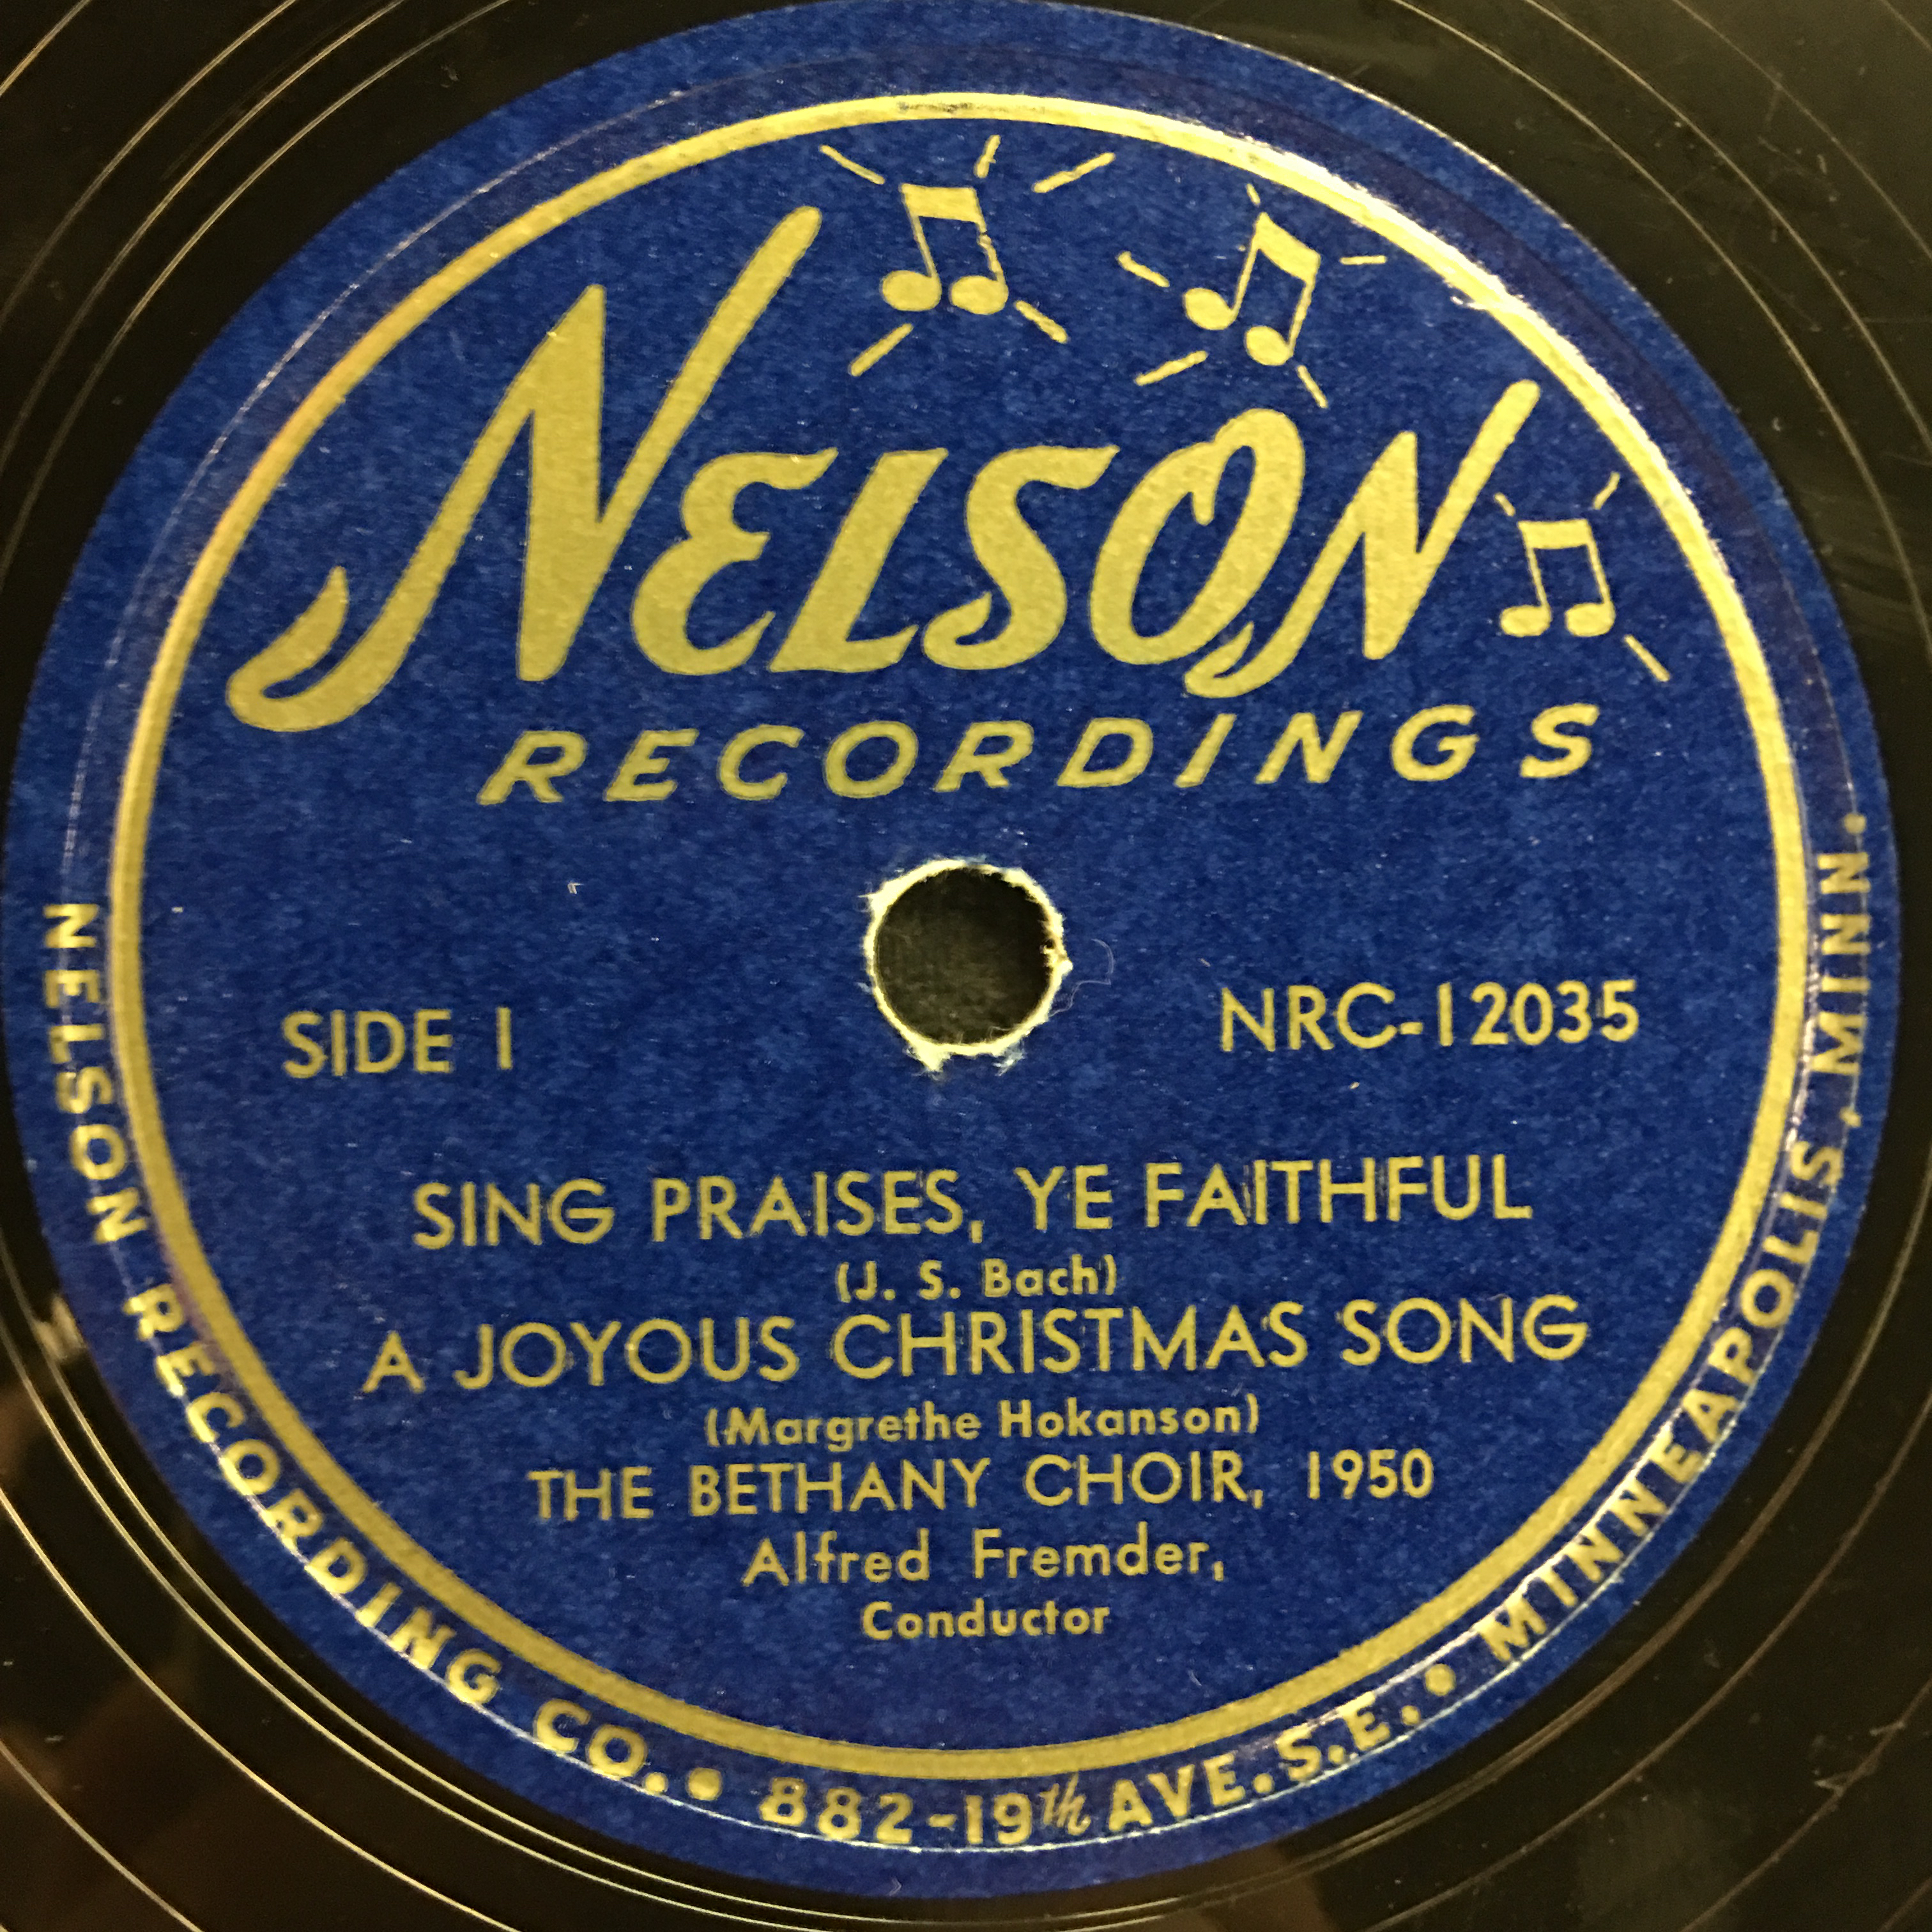 The Bethany Choir 1950: Sing Praises, Ye Faithful Vinyl 1 Side 1